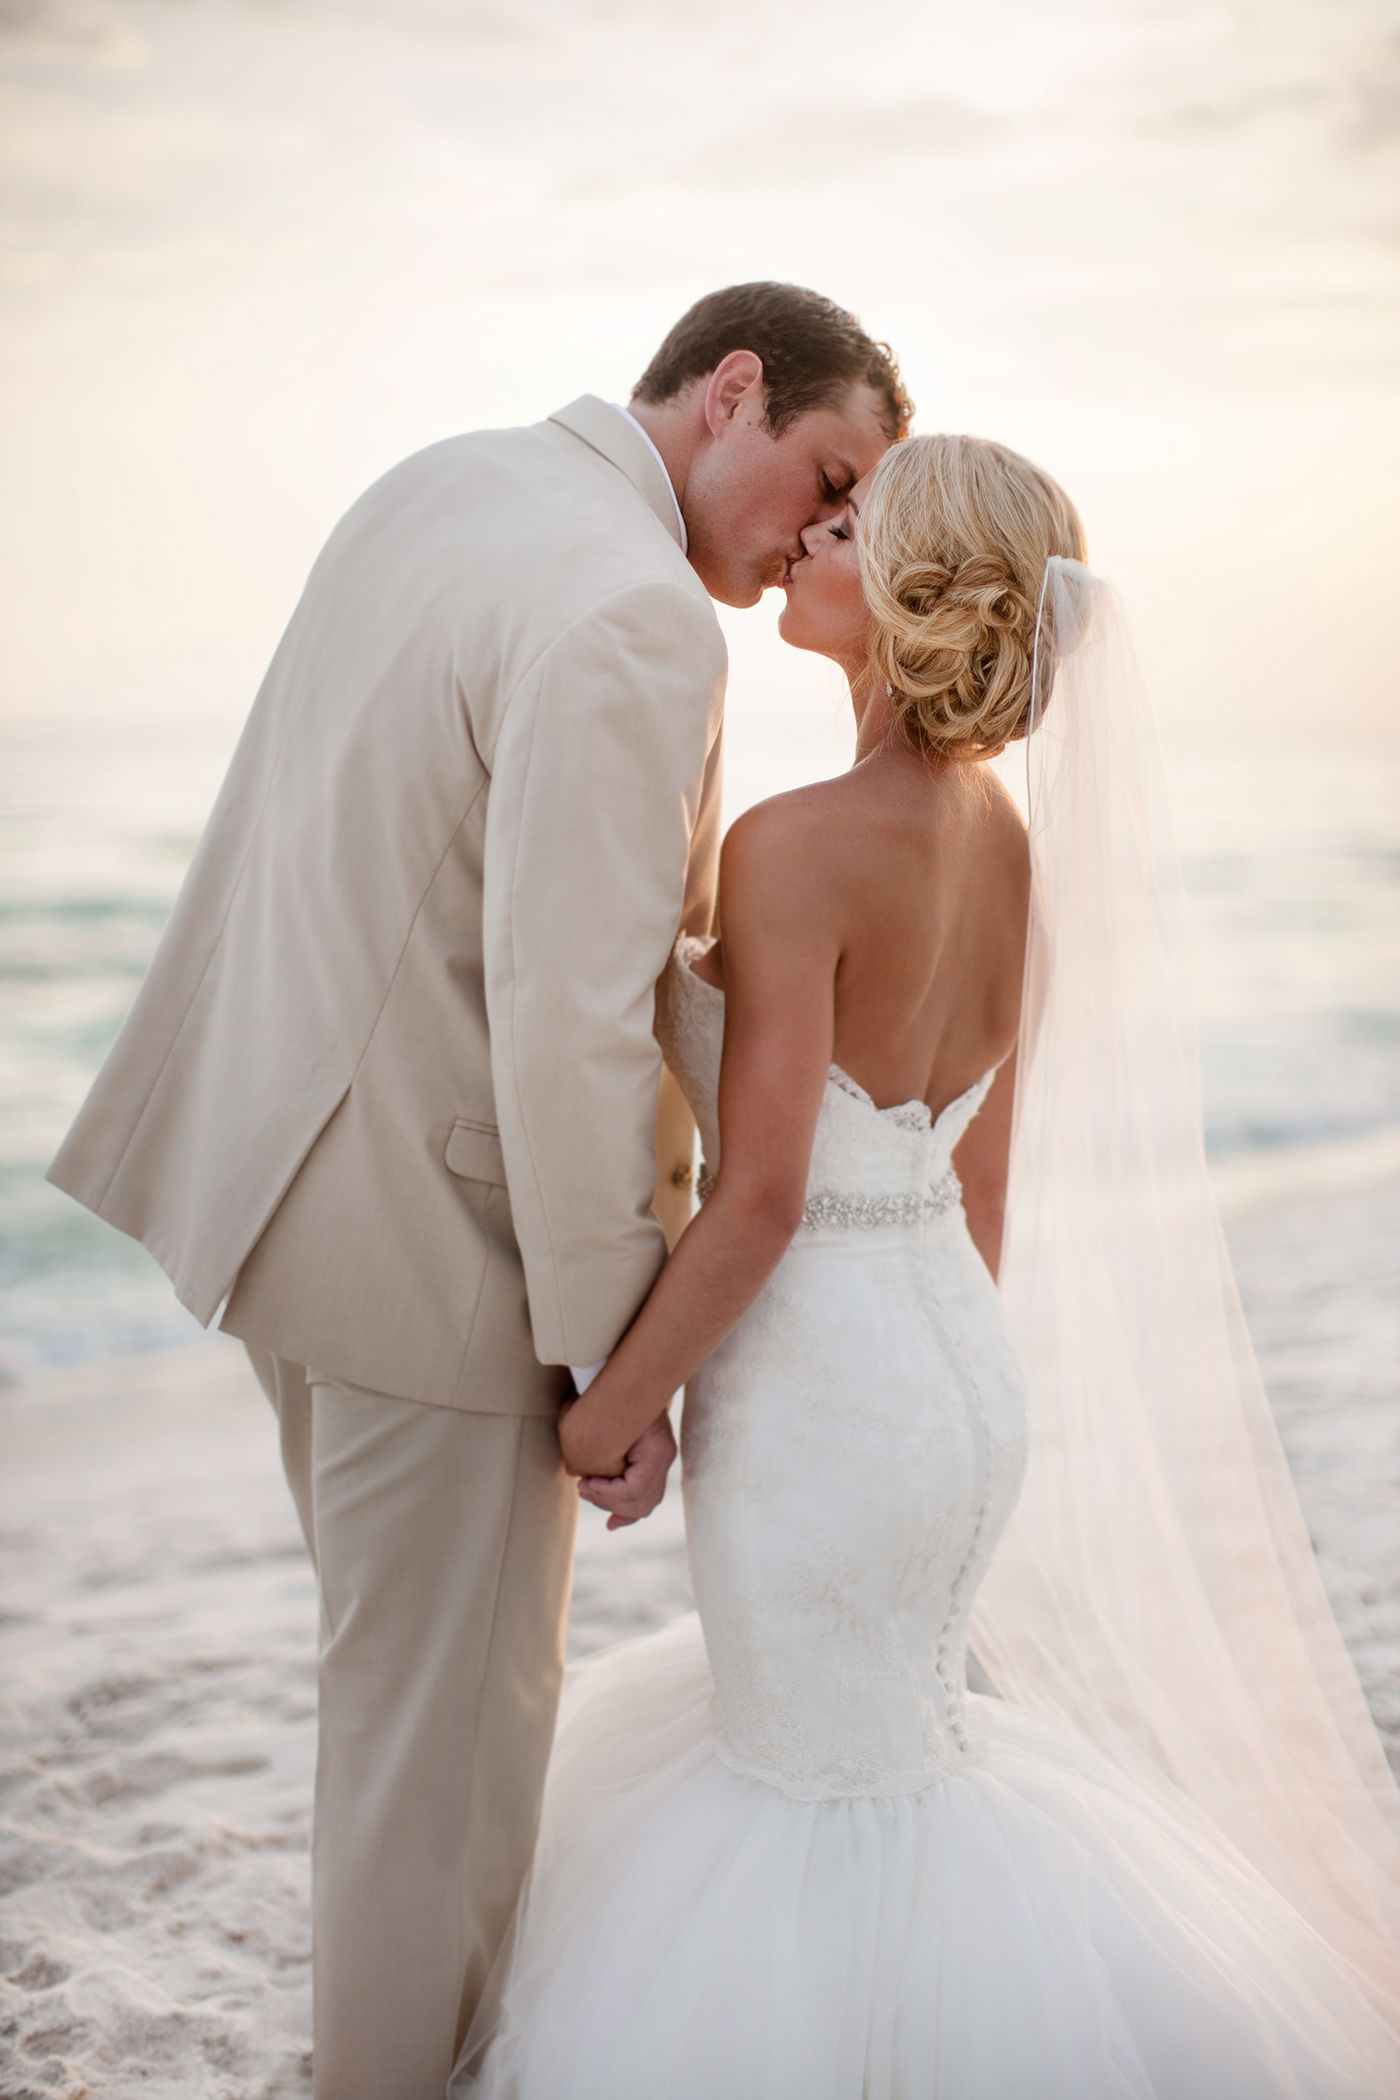 Photo By Leslee Mitchell. Rosemary Beach Wedding